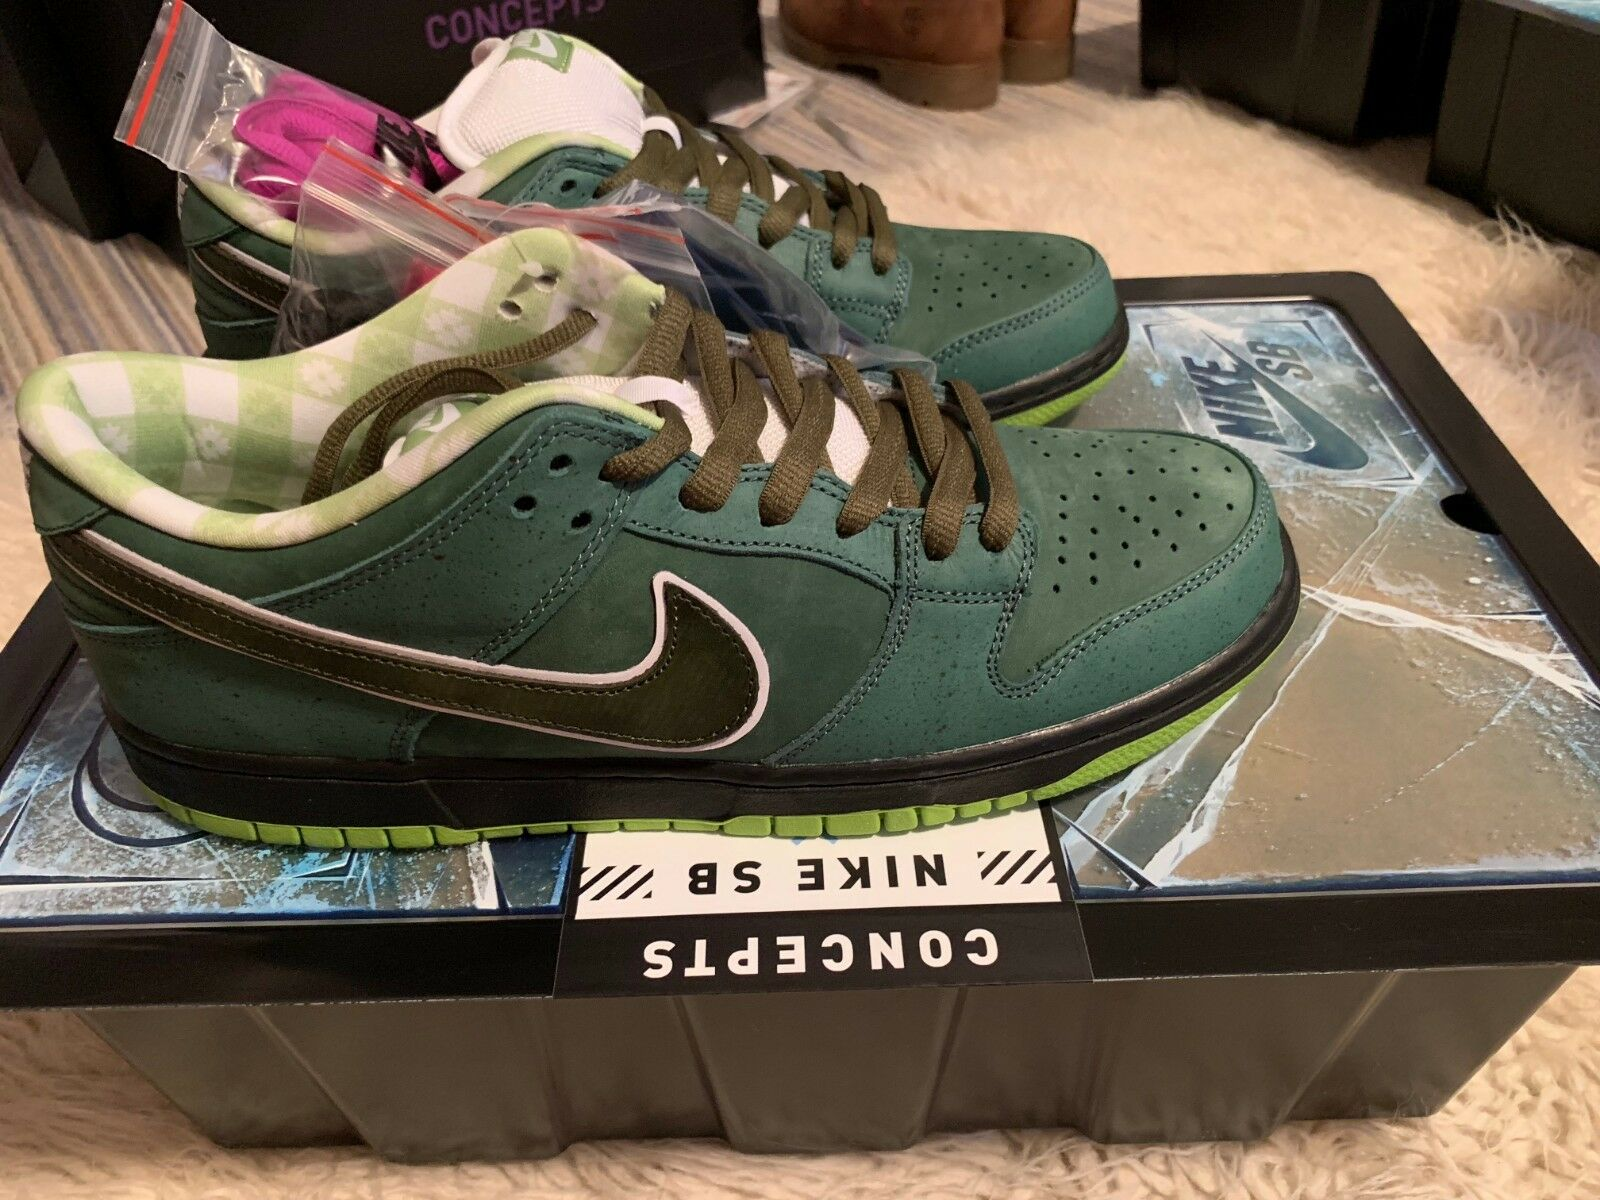 Concepts Green Lobster Nike SB Rare Special Box Rare Size 10.5 In Hand